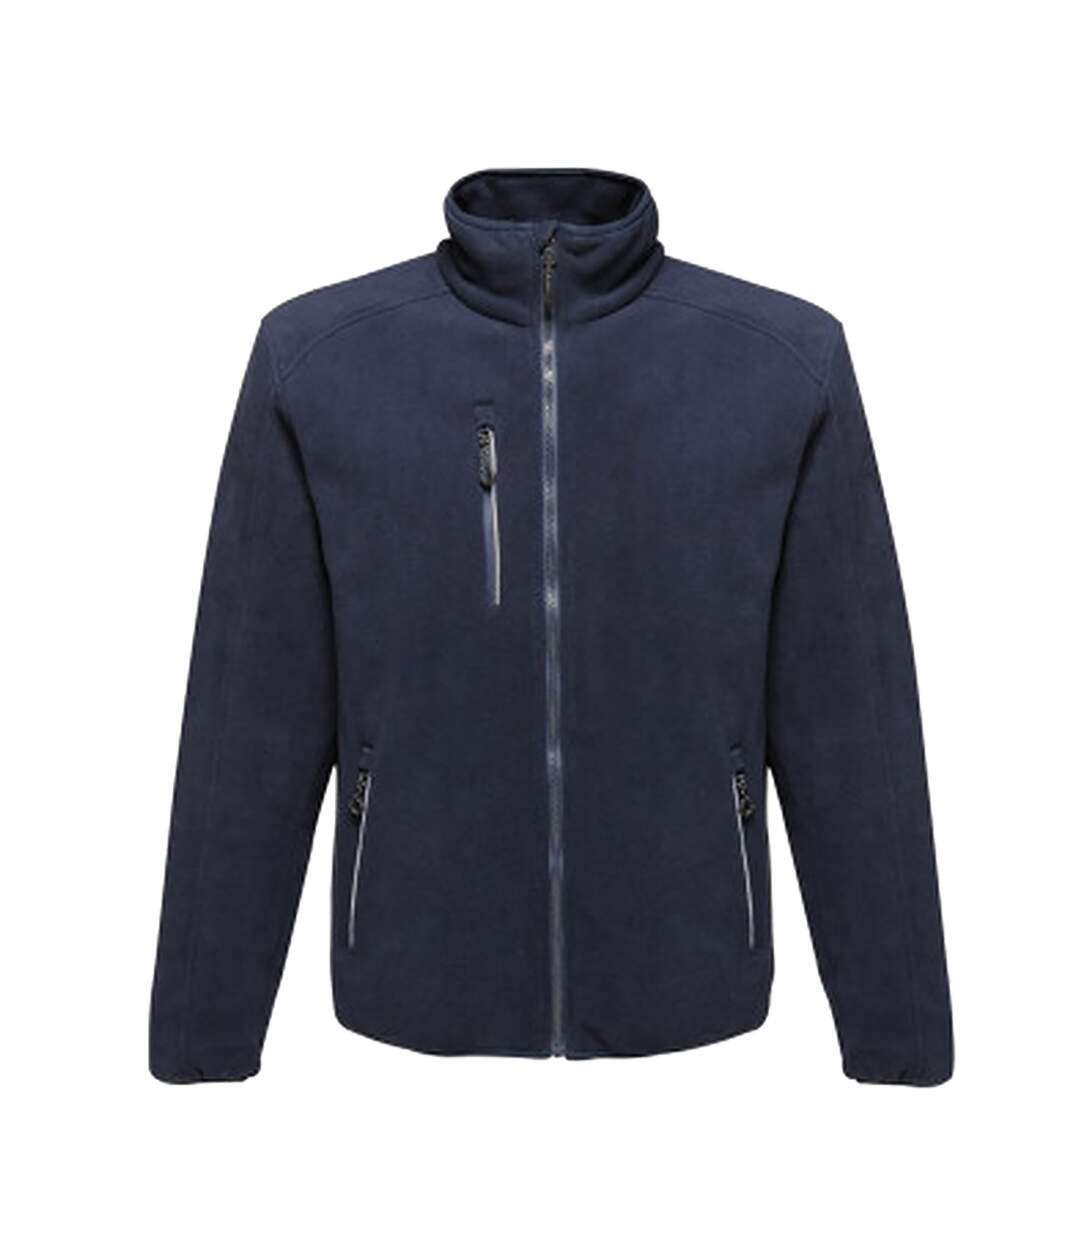 Regatta Omicron III Waterproof Fleece Jacket (Navy/Navy) - UTPC3299